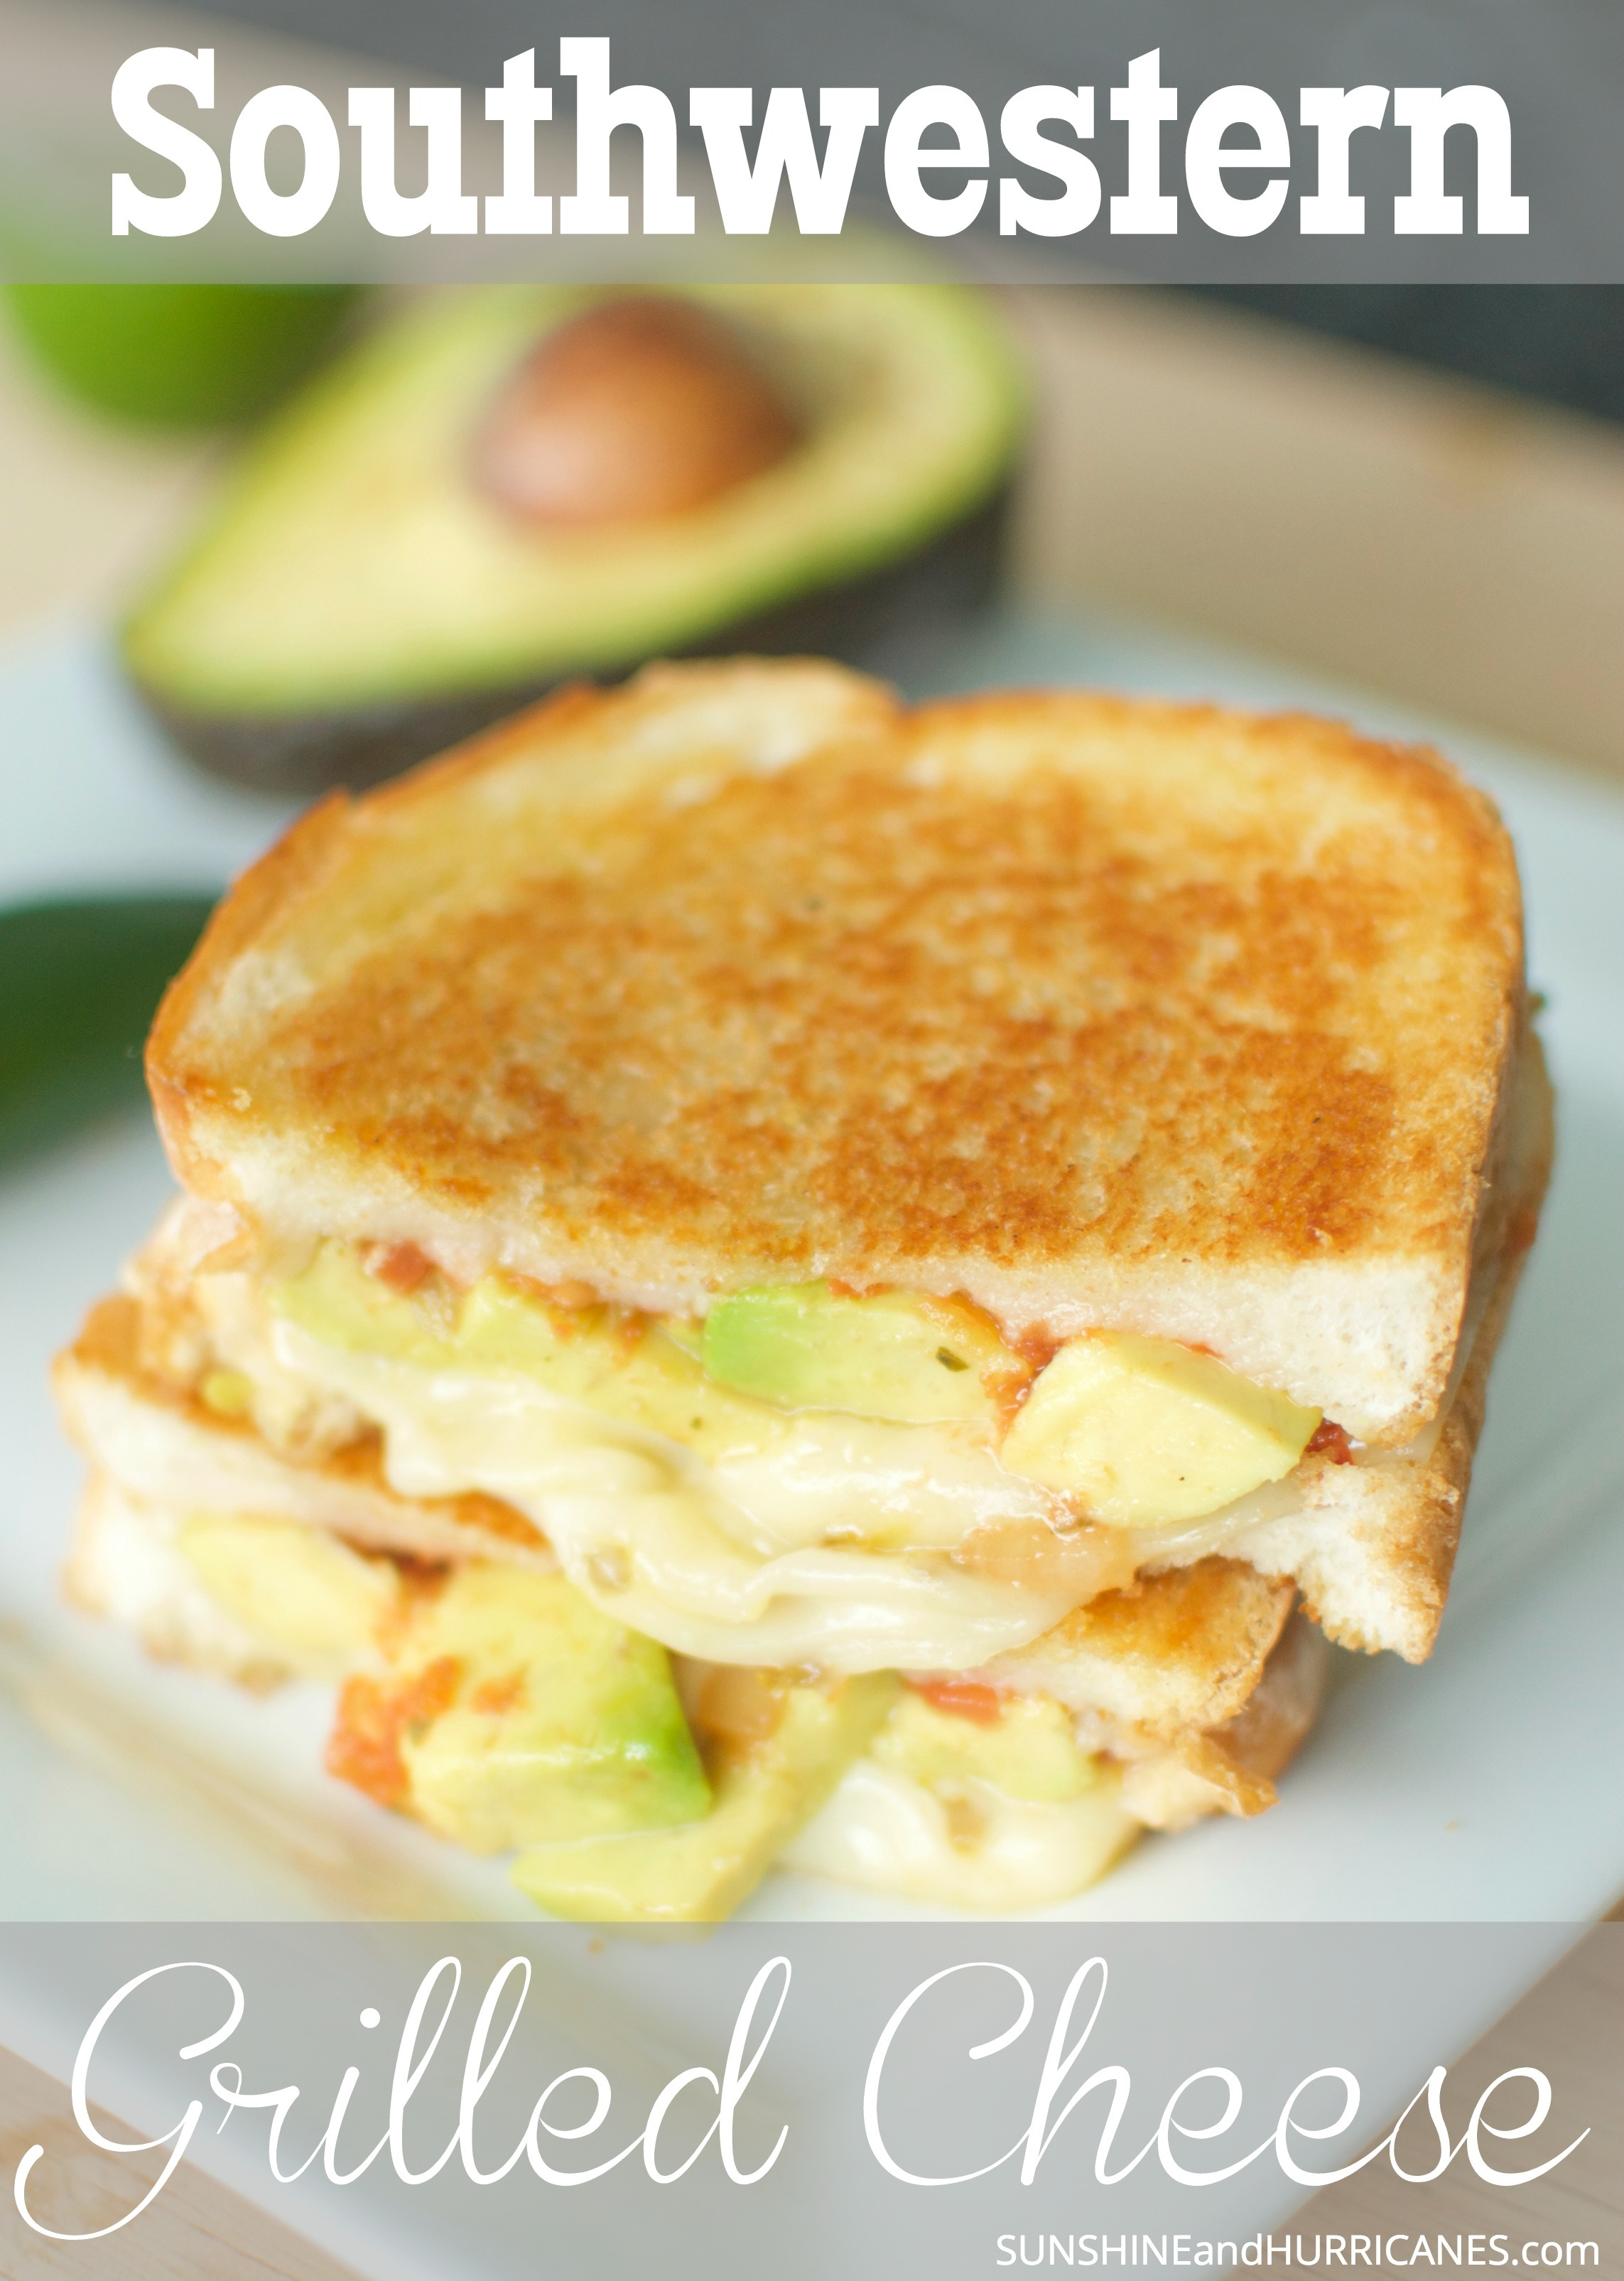 Do you love grilled cheese sandwiches. How about Mexican and Southwestern food? Well, we've got the PERFECT recipe for you. This new twist on a traditional favorite is full of flavor. Delicious, cheesy and with just a little kick is grilled cheese taken up a notch. Southwestern Style Grilled Cheese from SunshineandHurricanes.com